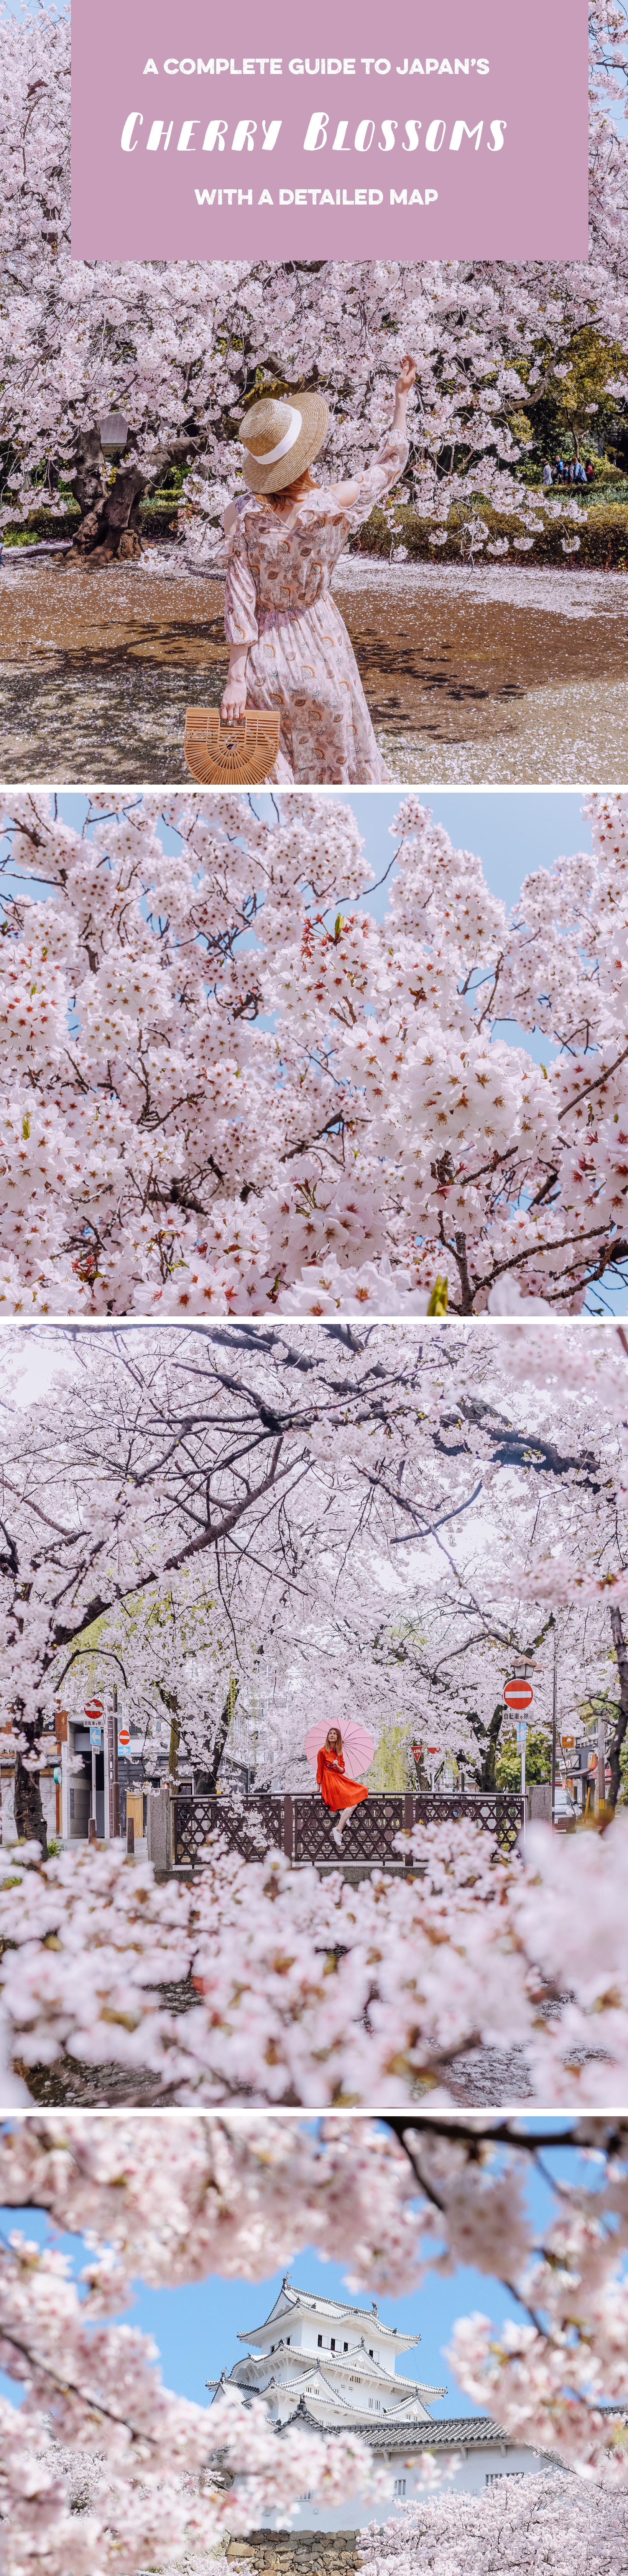 japan-cherry-blossom-guide1.jpg